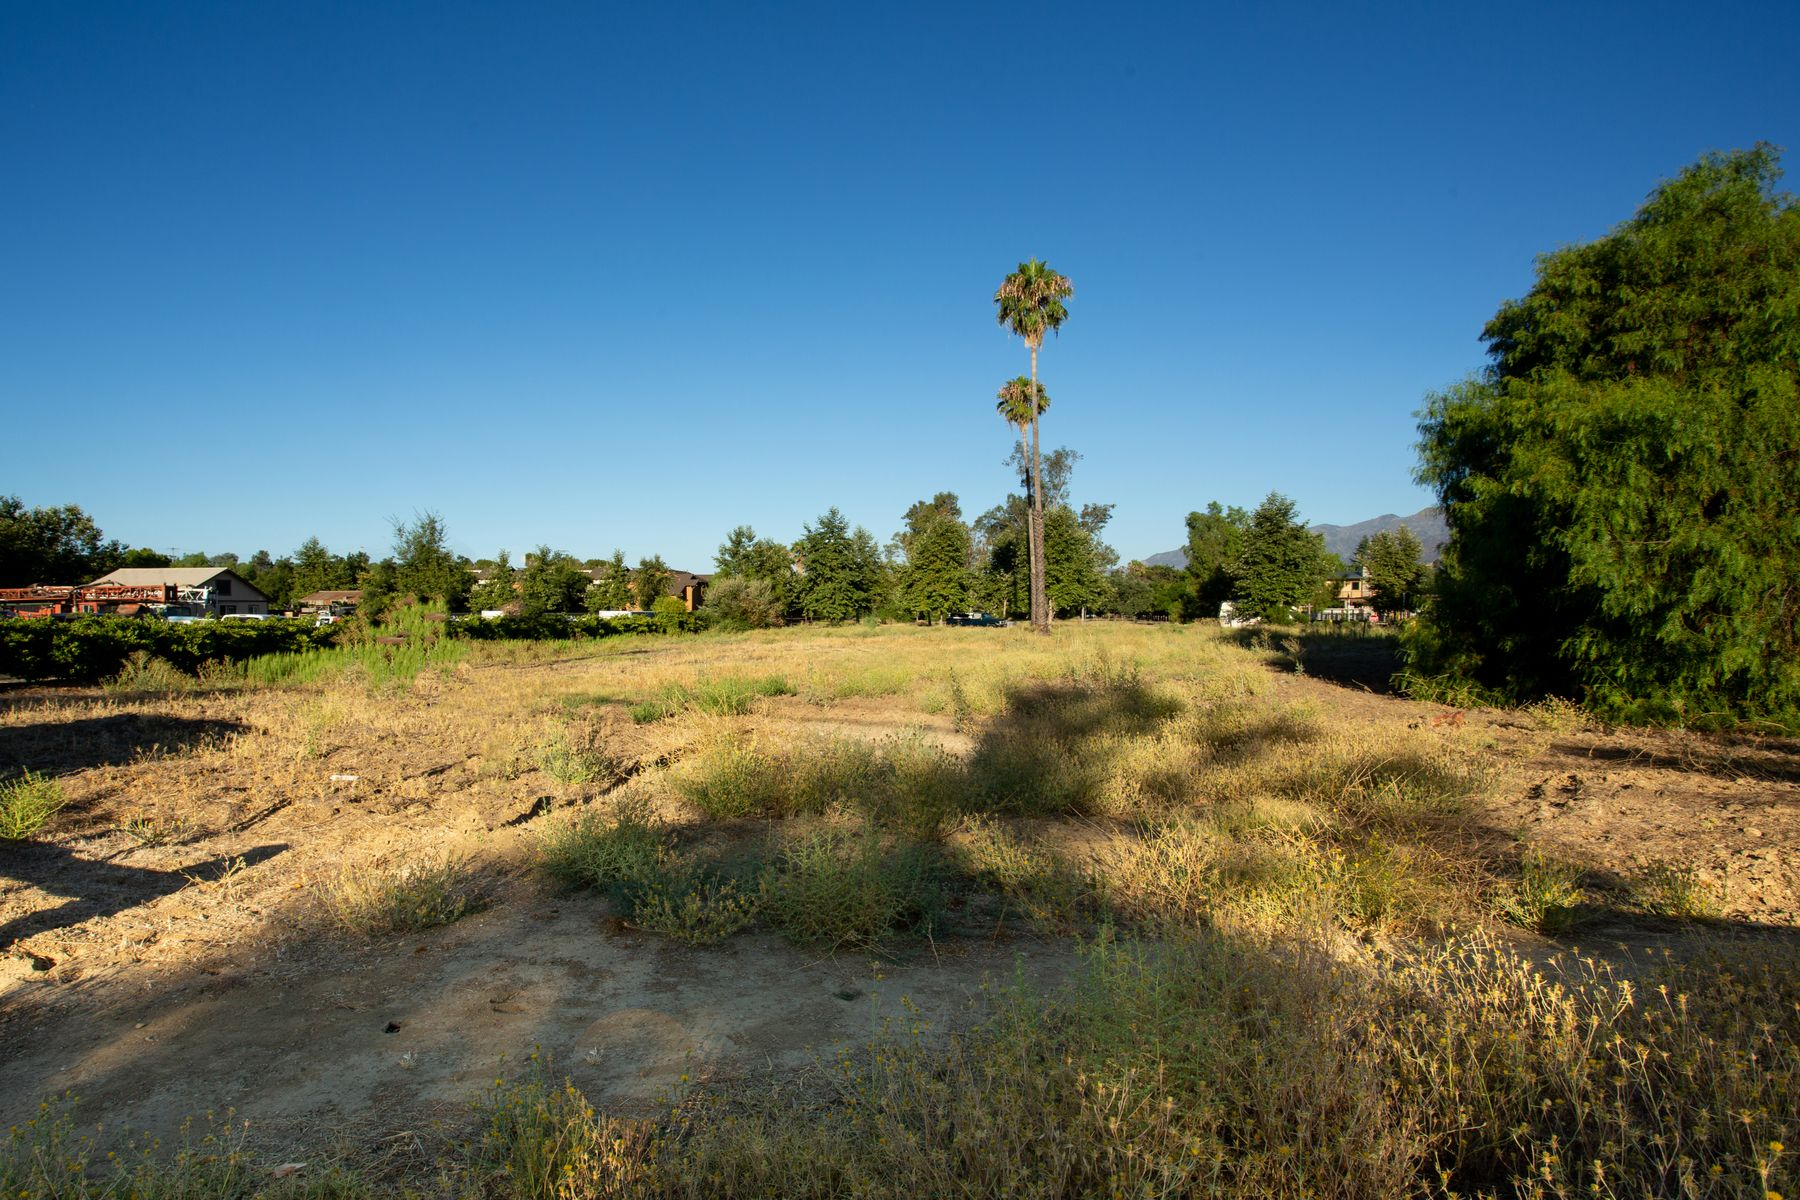 Terreno por un Venta en 1.4 acres Prime Development Site 323 Bryant Street Ojai, California 93023 Estados Unidos